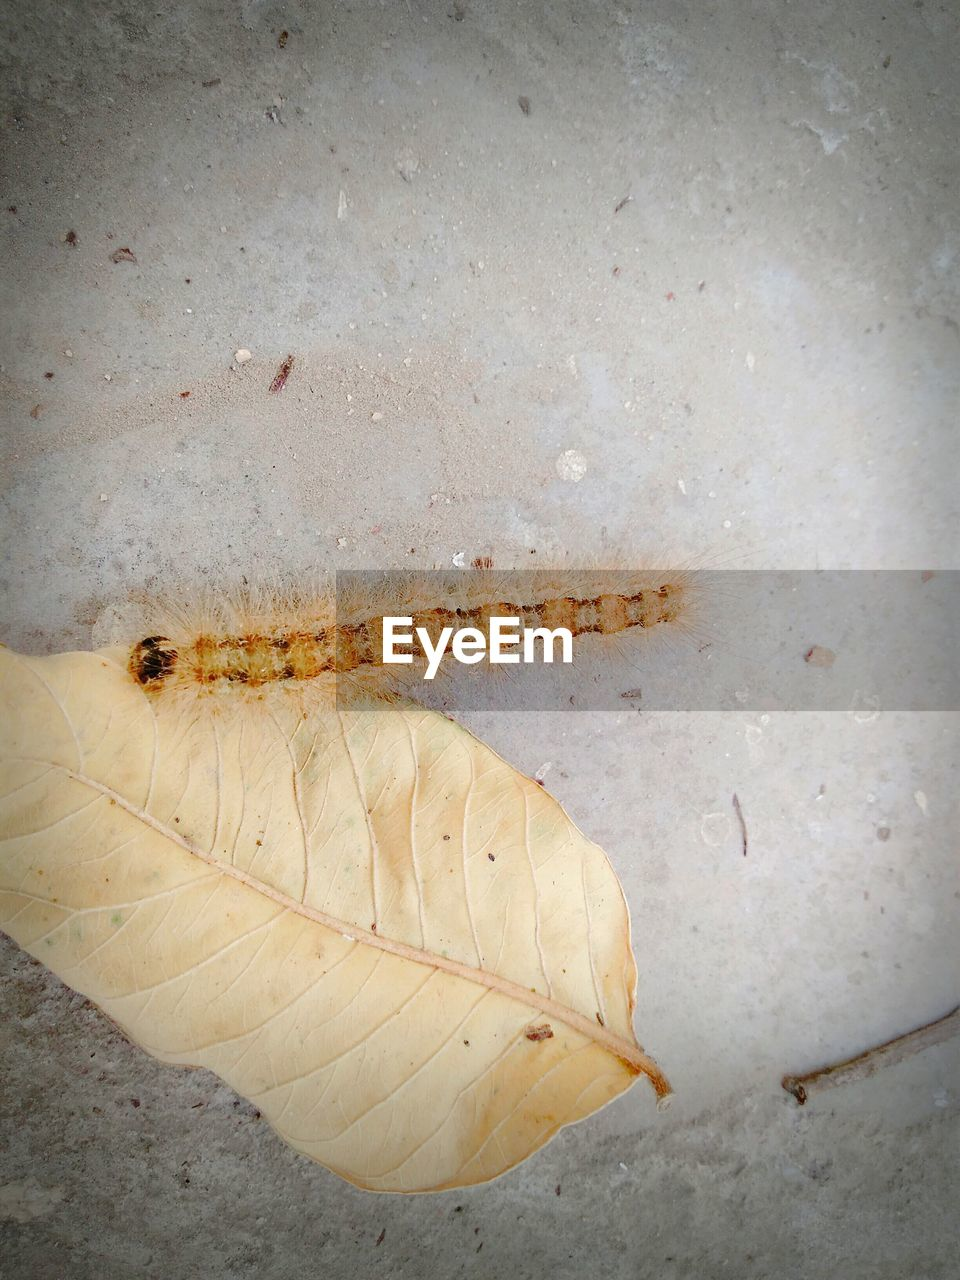 insect, animal themes, animals in the wild, no people, one animal, close-up, day, nature, outdoors, leaf